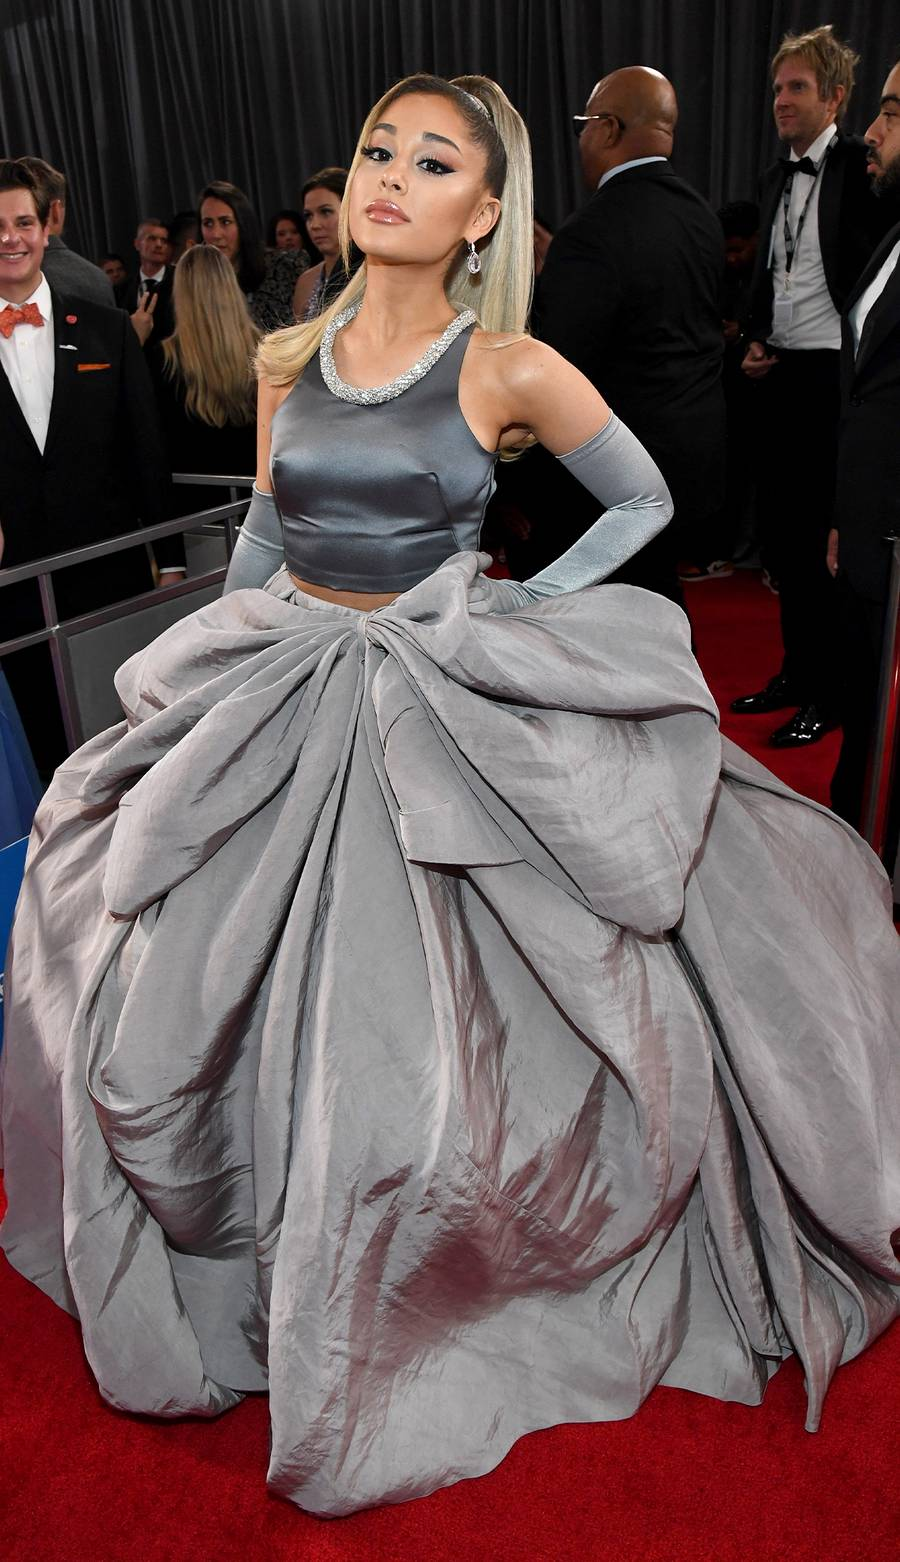 ariana-grande-in-grey-outfit-2020-grammy-awards